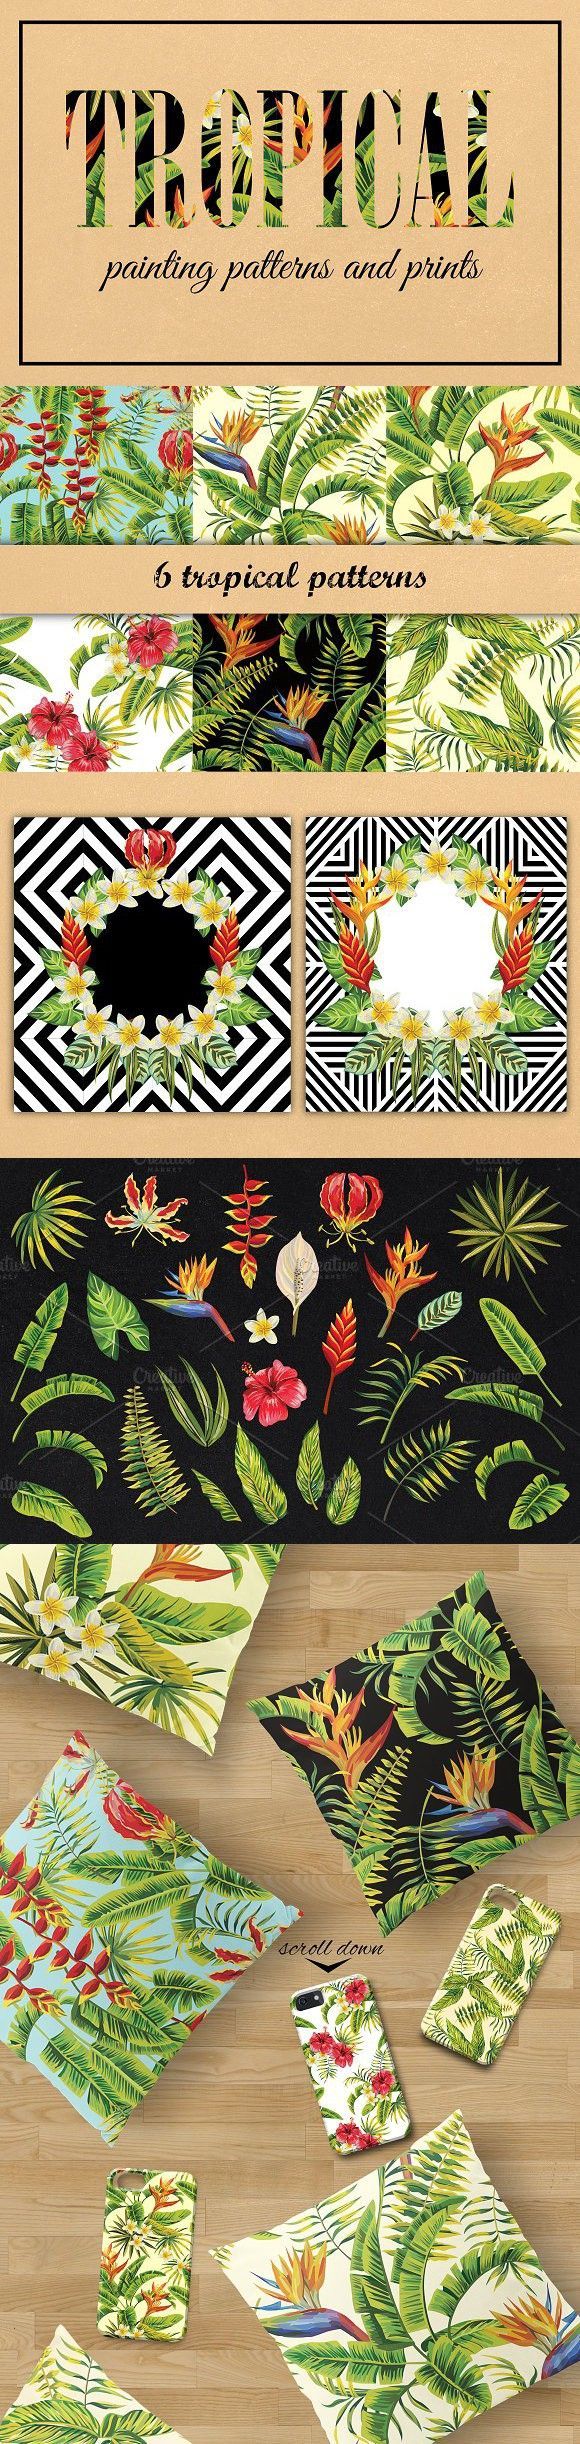 tropical painting patterns and print. Patterns